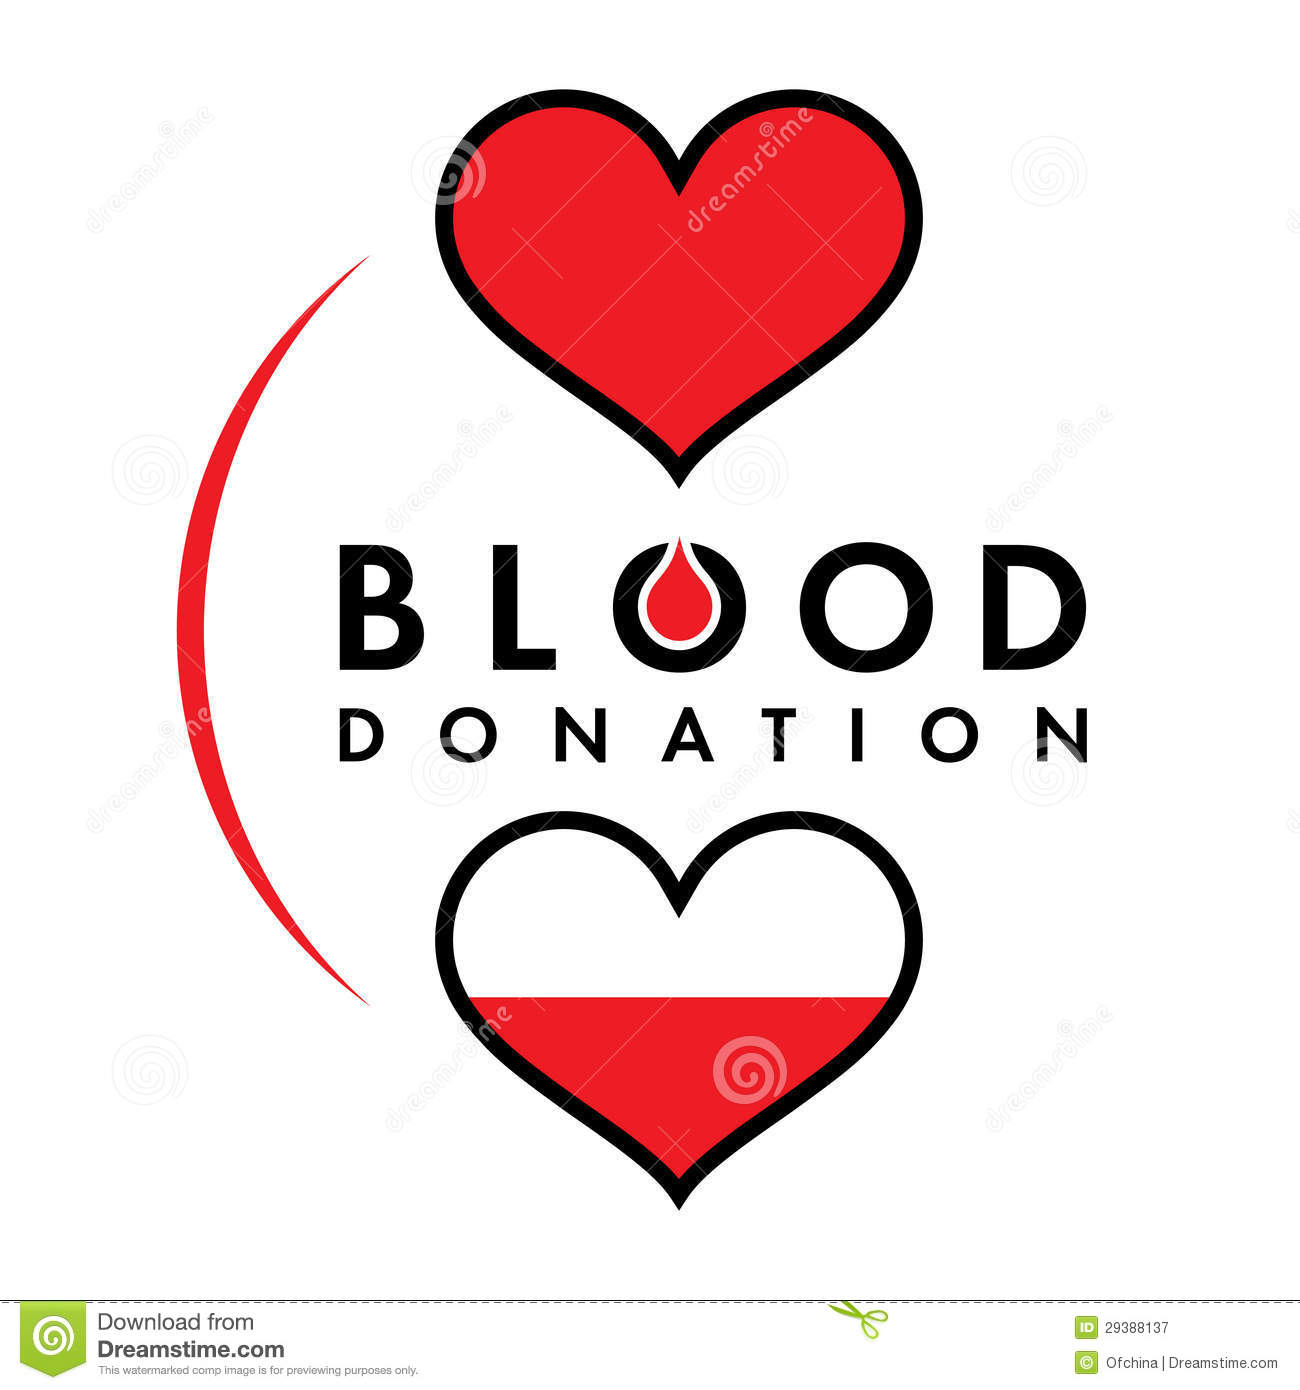 Blood Donation Royalty Free Stock Photography - Image: 29388137